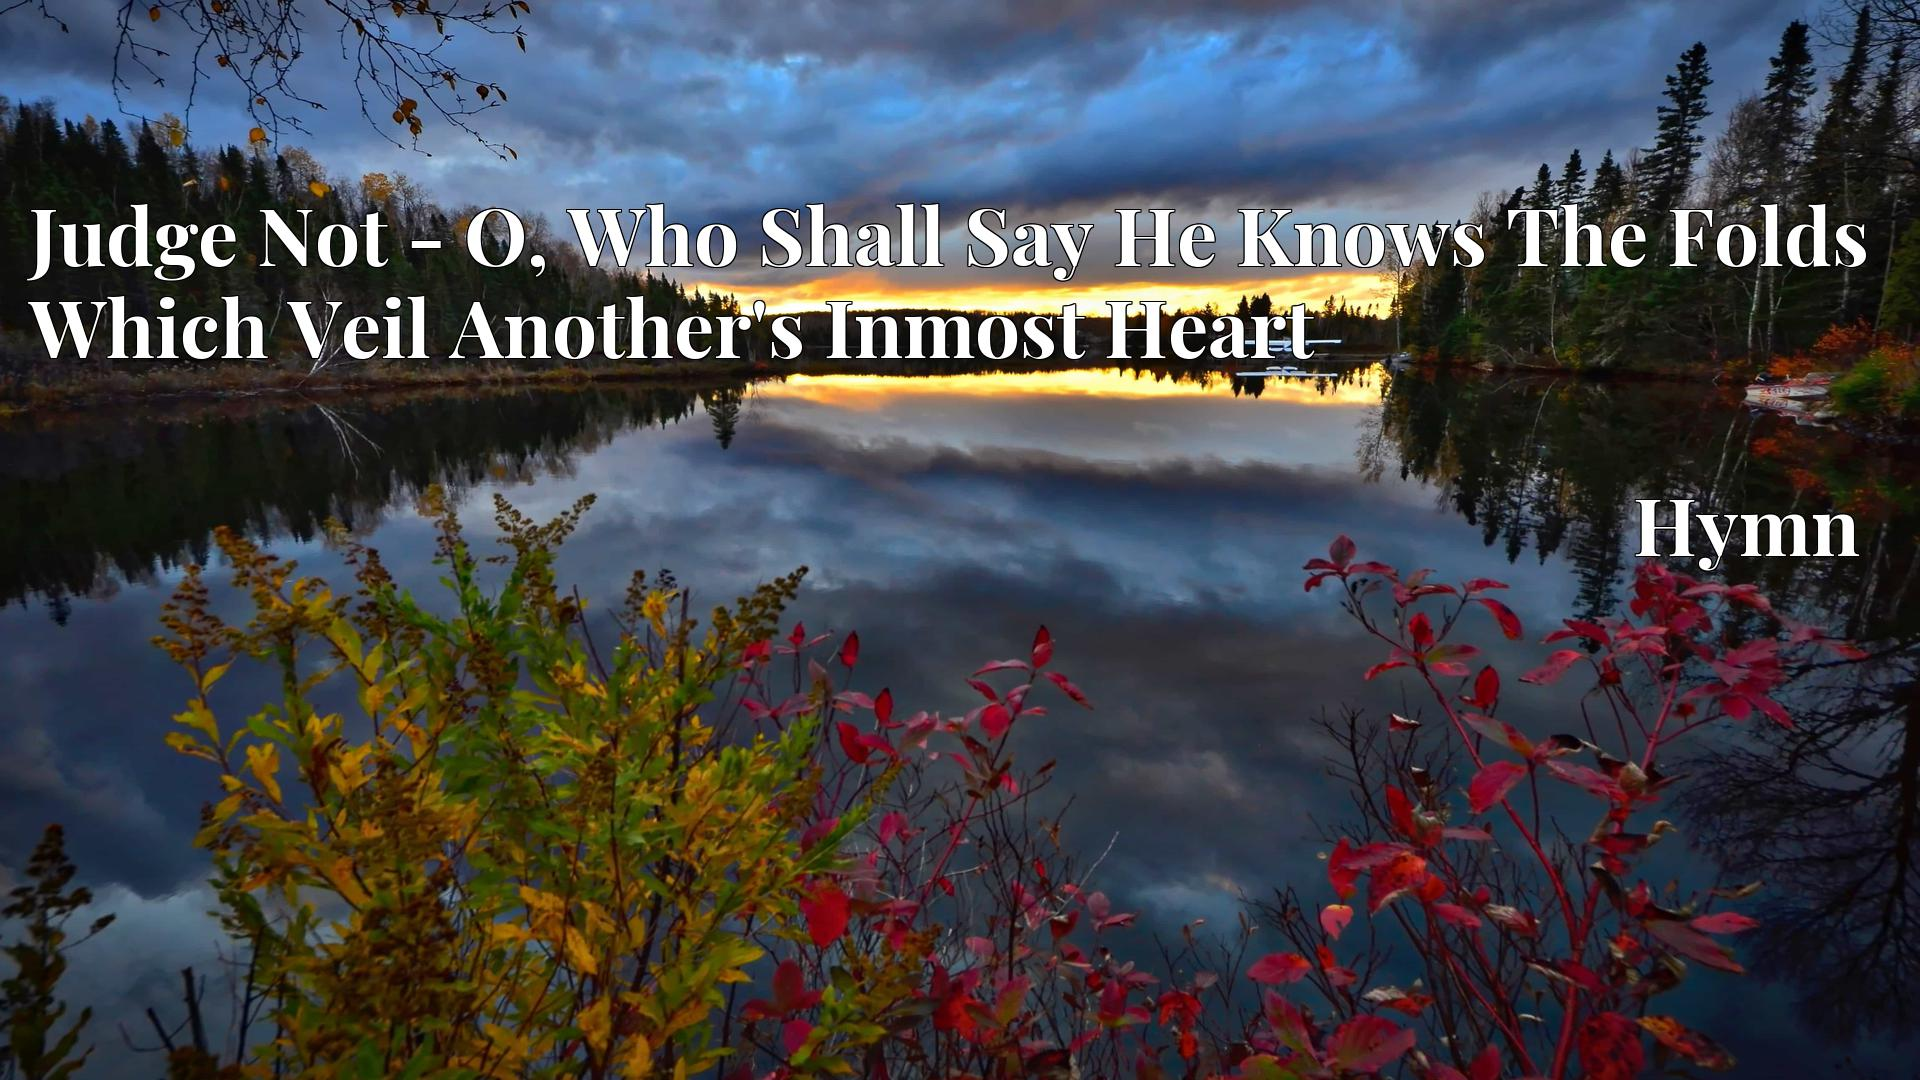 Judge Not - O, Who Shall Say He Knows The Folds Which Veil Another's Inmost Heart - Hymn